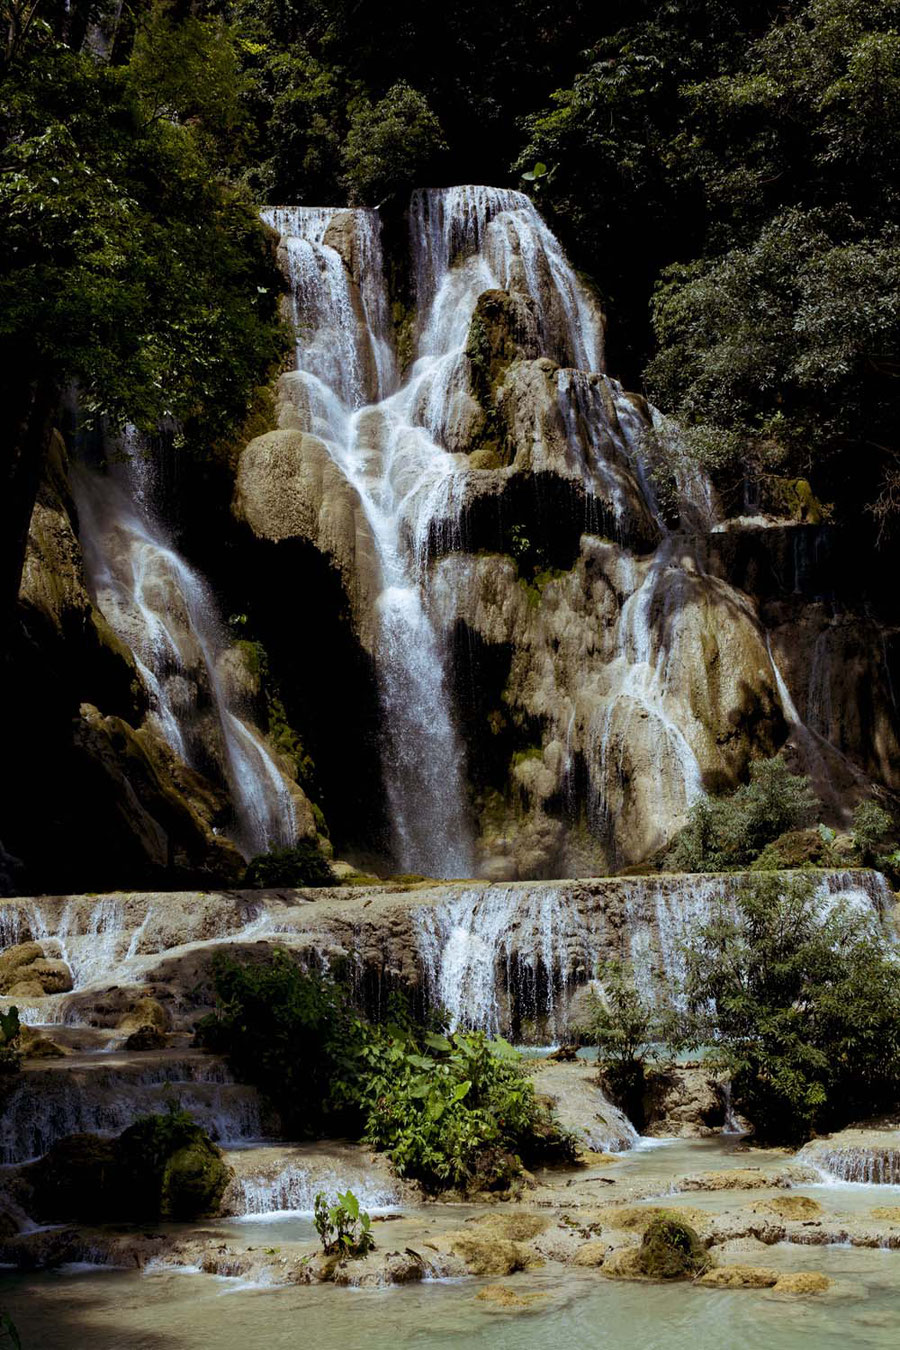 Kuang Si Waterfall, close to Luang Prabang, Laos